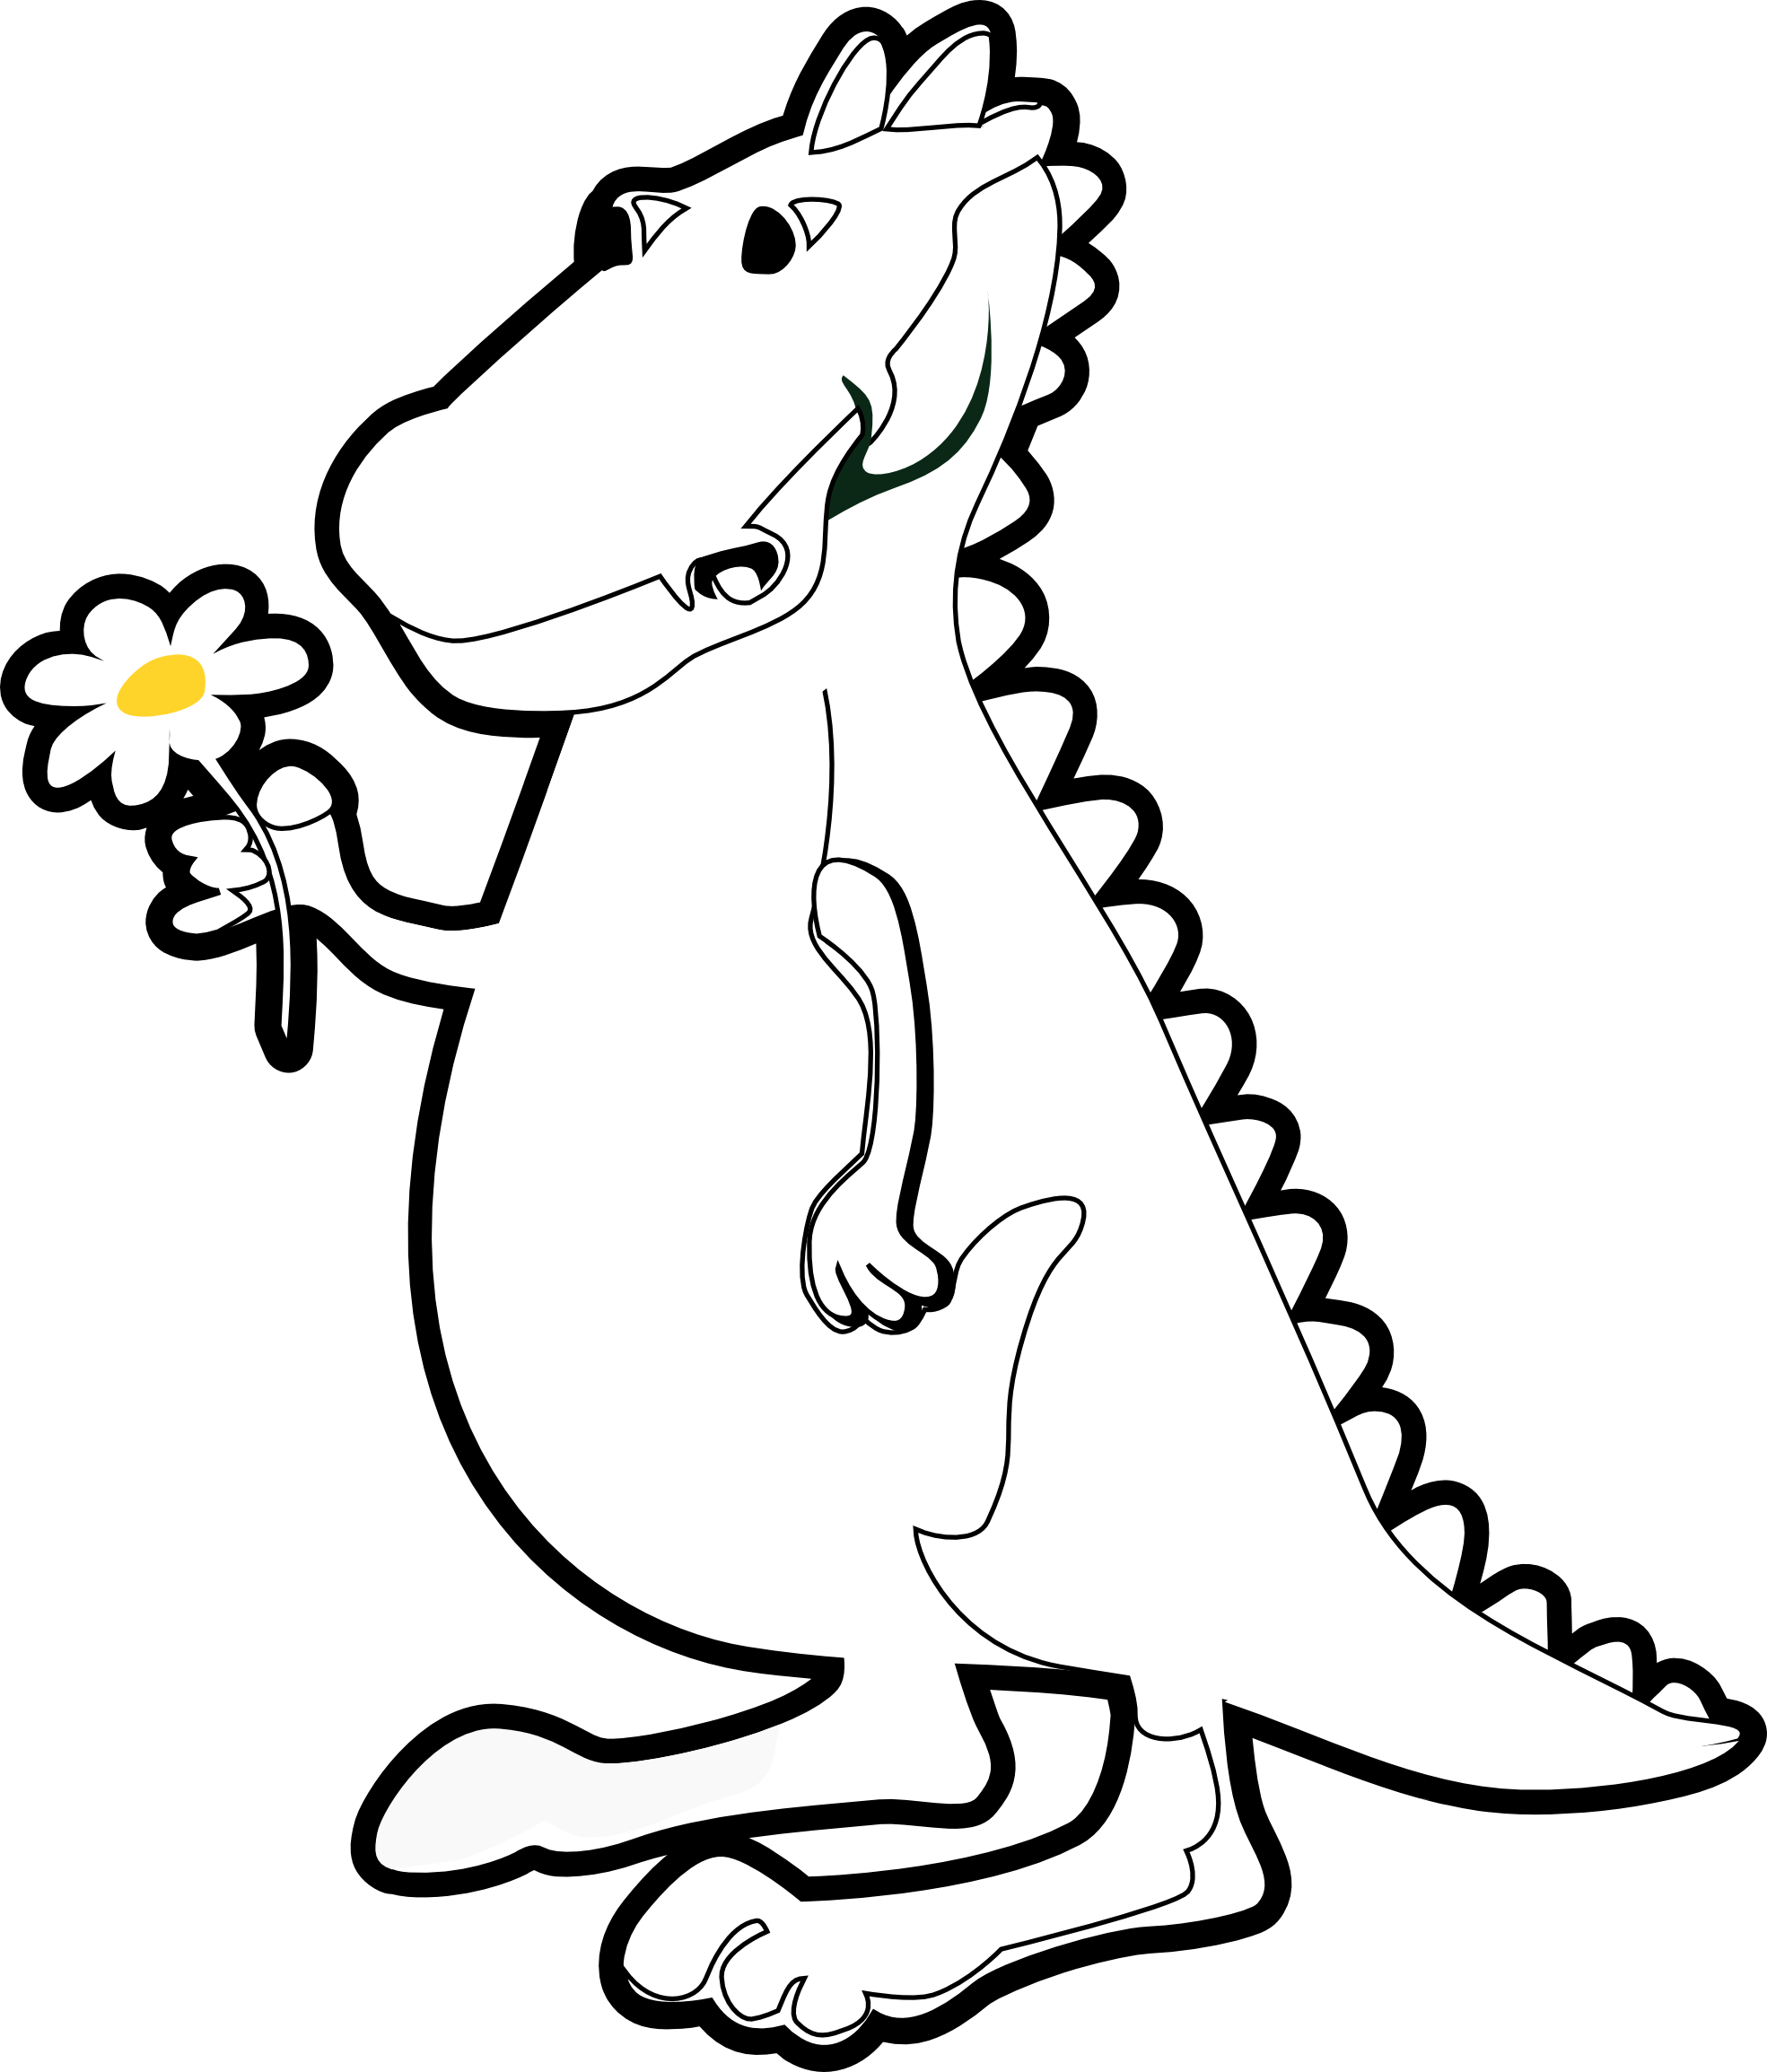 1969x2309 T Rex Png Black And White Transparent T Rex Black And White.png